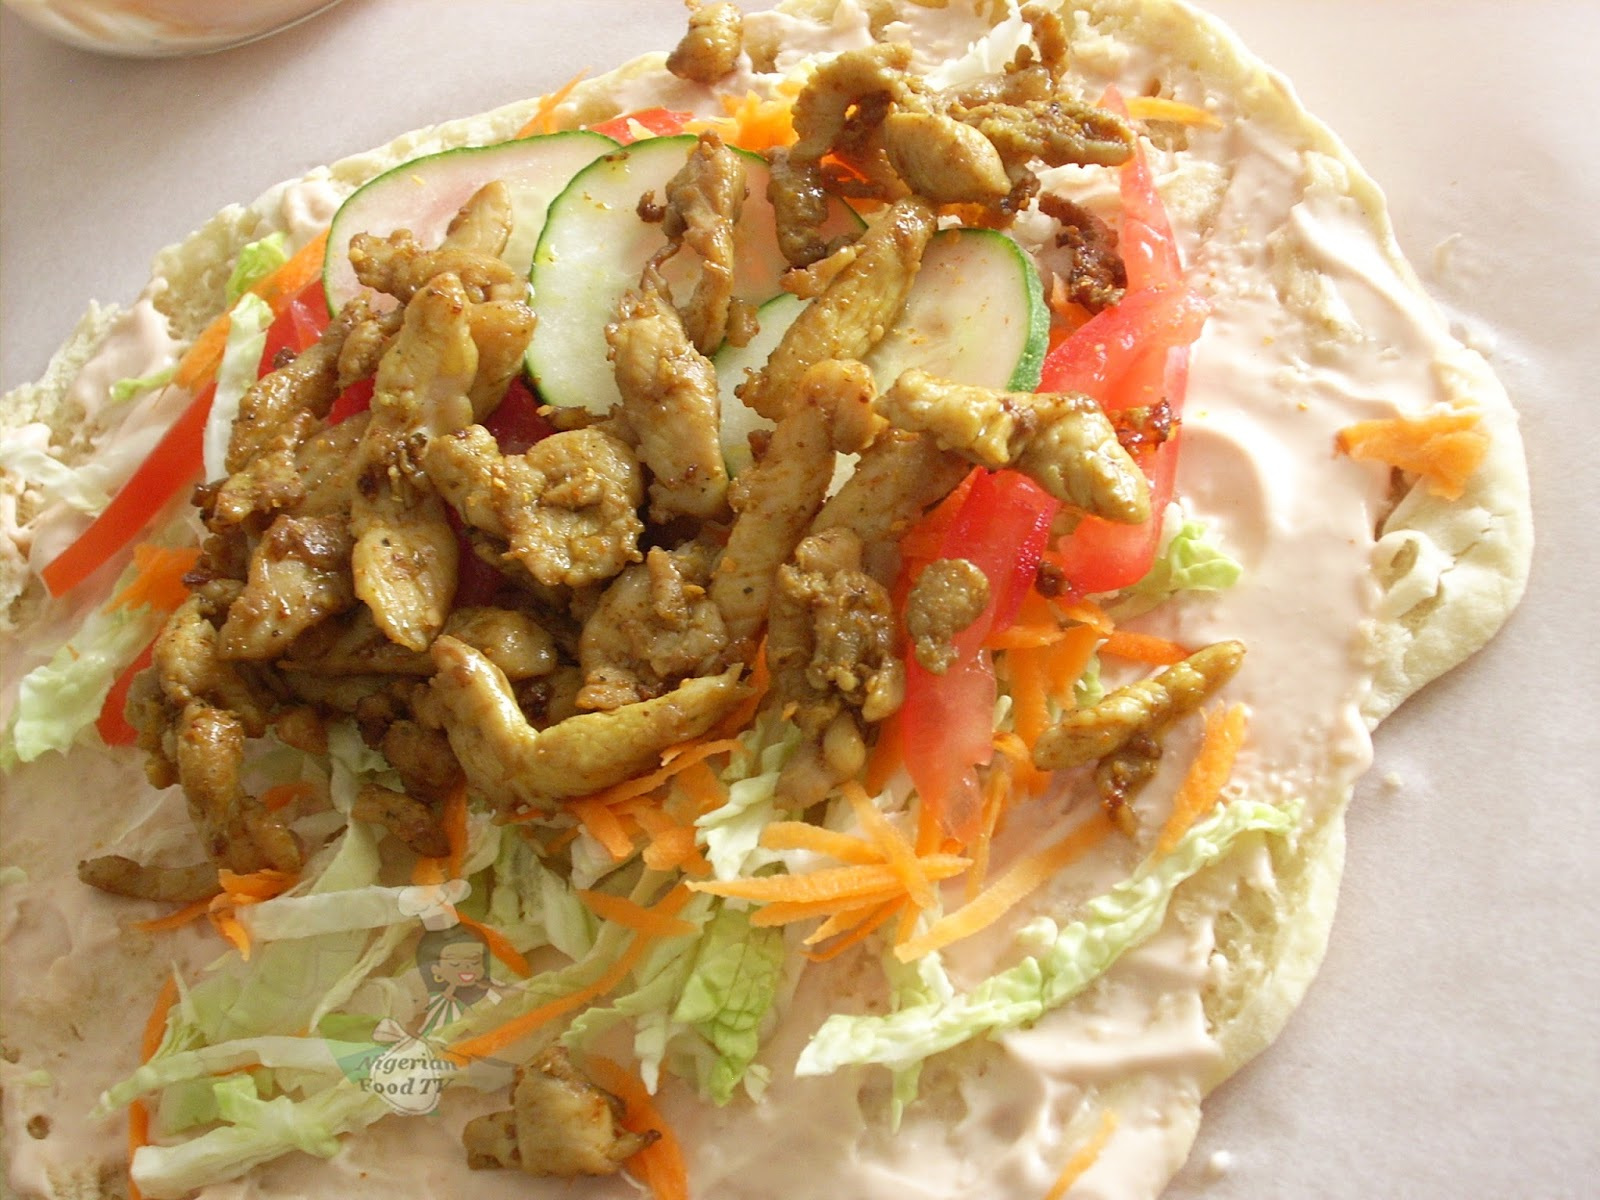 Nigerian shawarma made with homemade shawarma bread